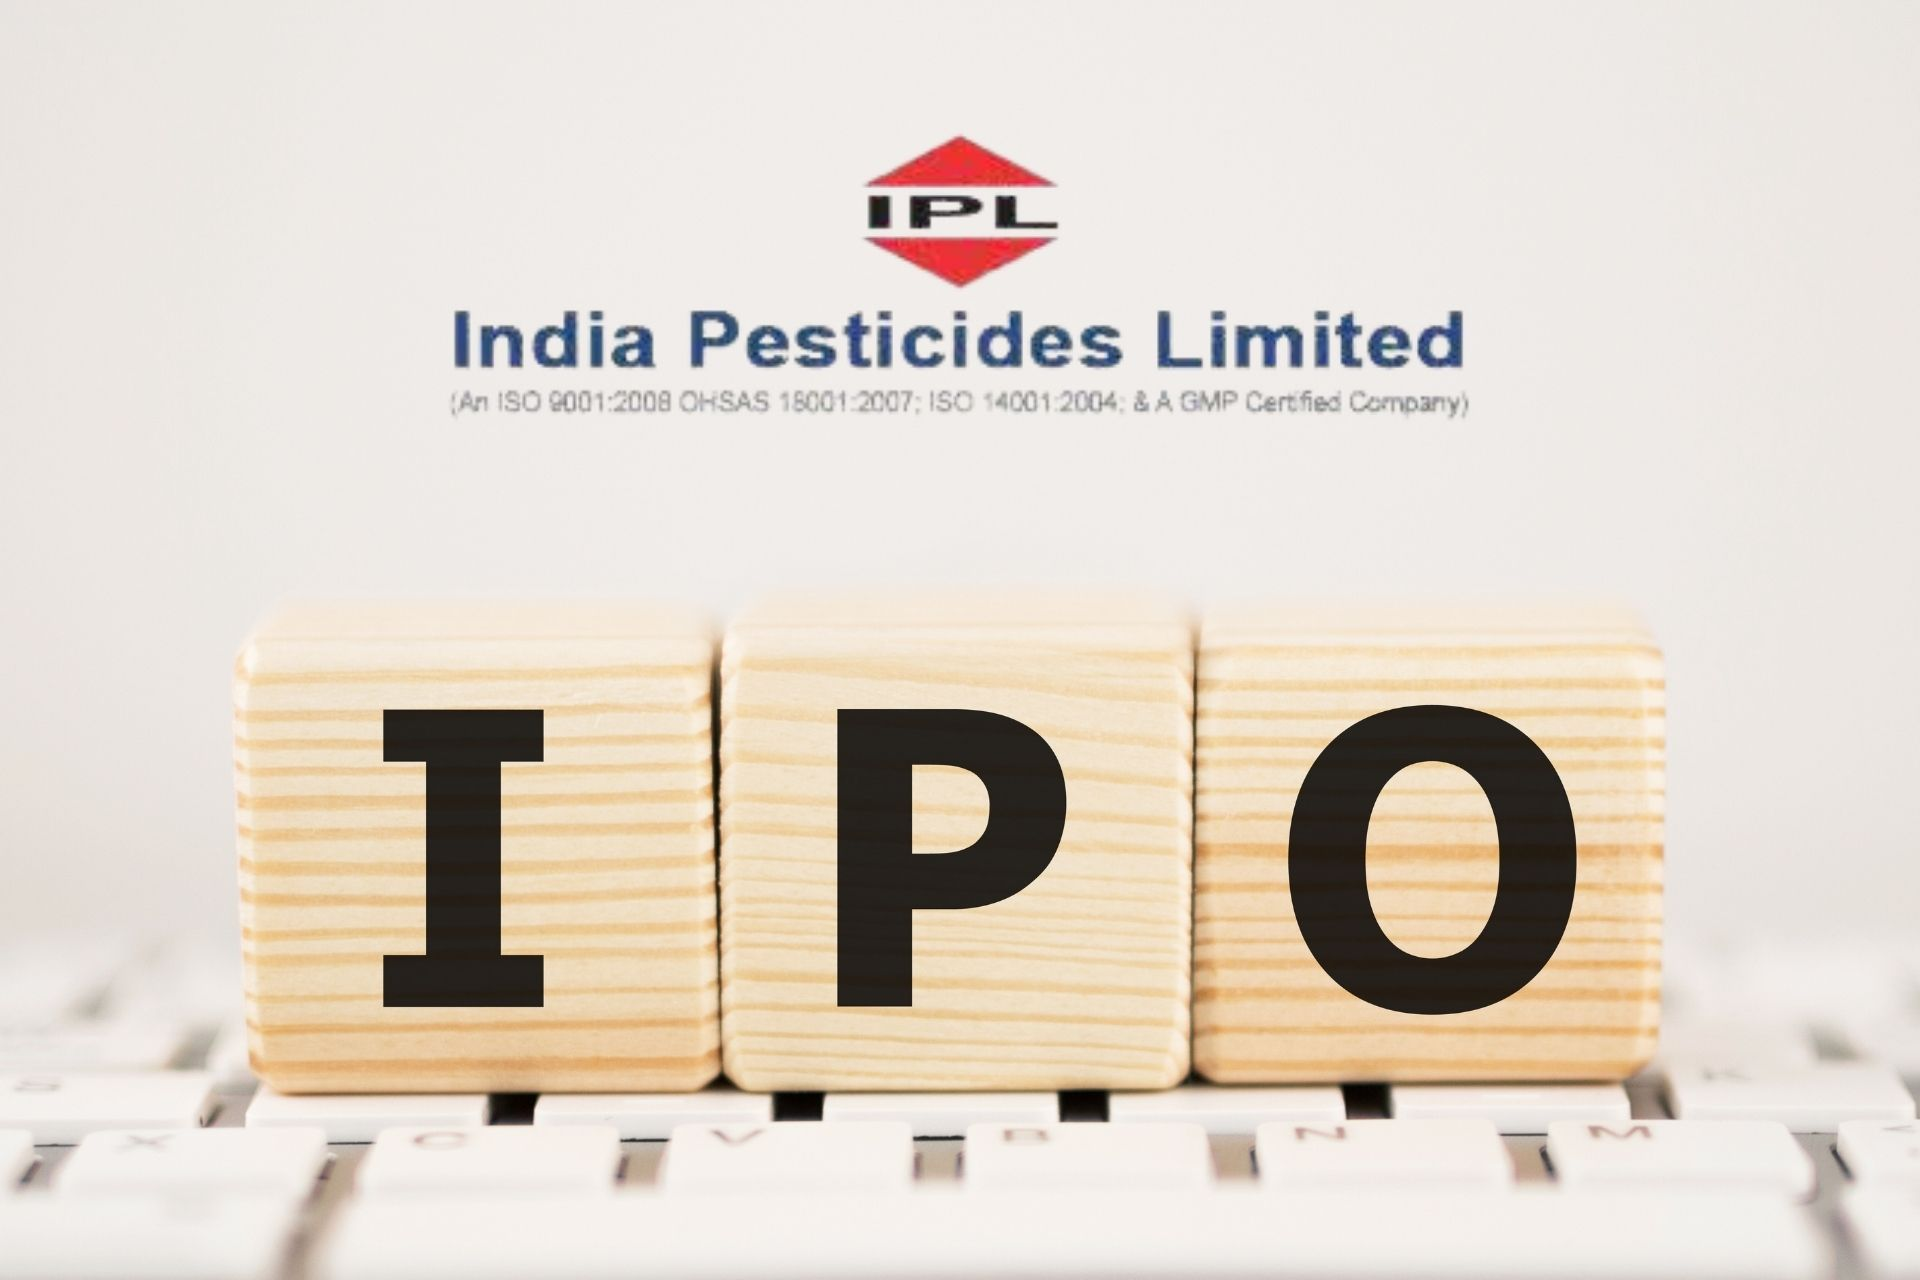 India Pesticides IPO Review 2021 – IPO Date, Offer Price & Details!